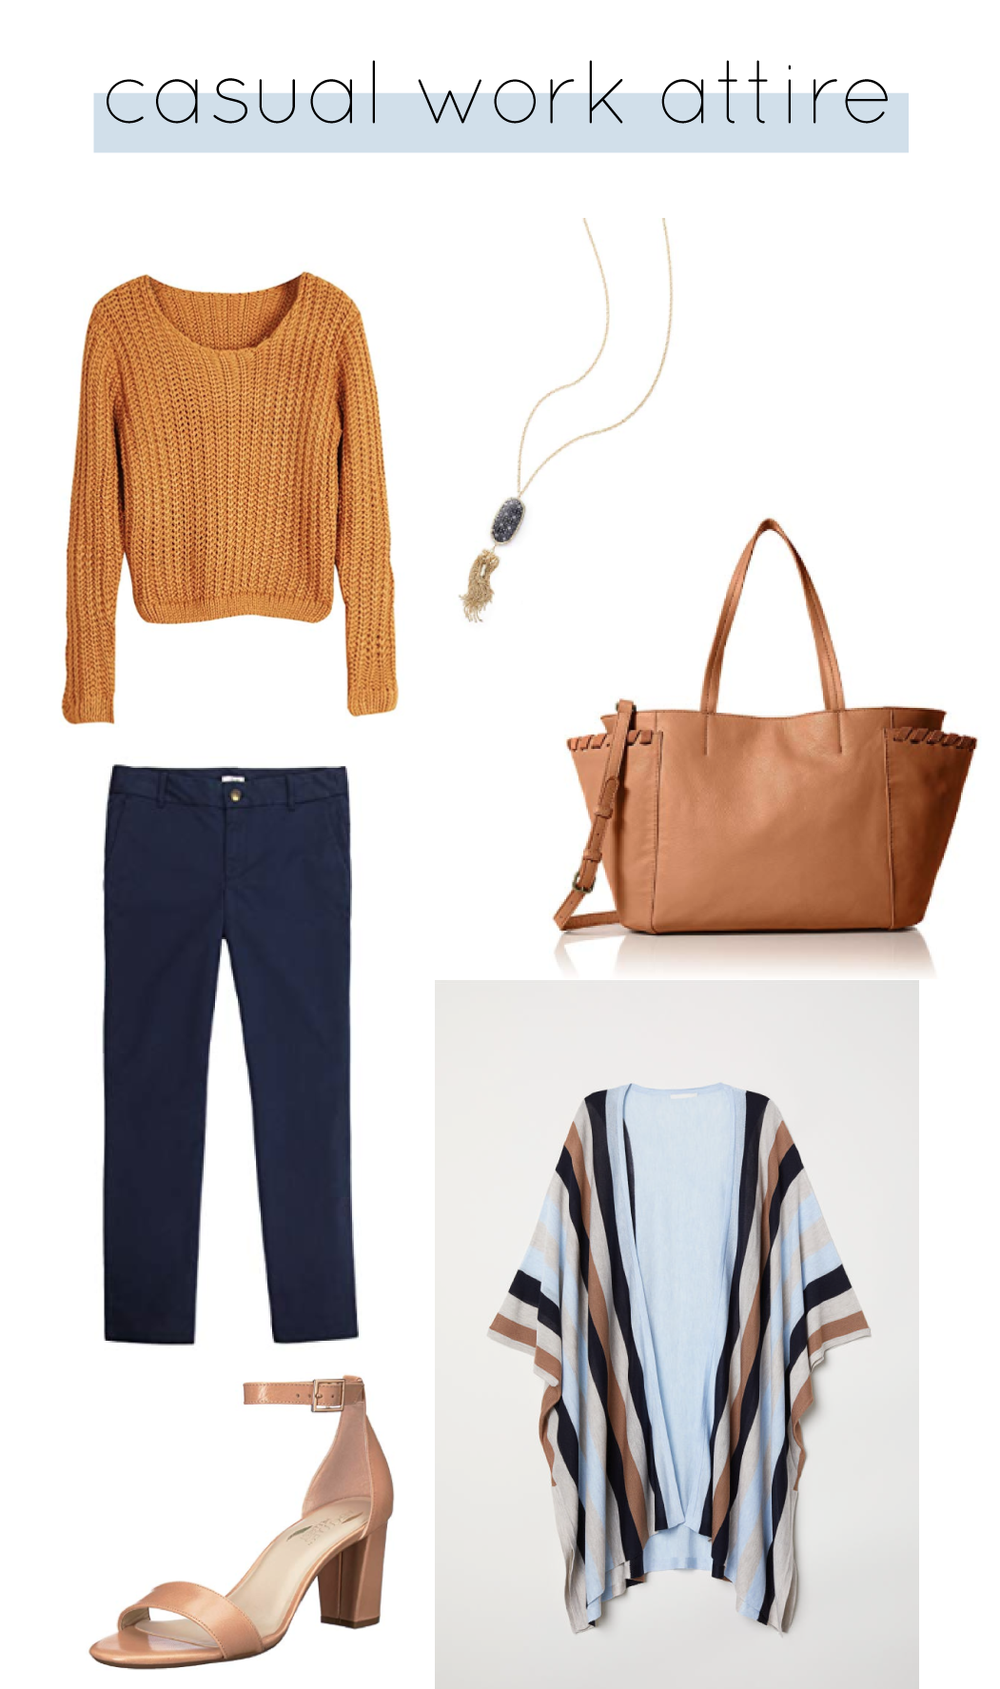 Outfit Details:  J.Crew Chino Pant  |  Aphratti Sweater  |  H&M Striped Cardigan  |  Aerosoles Heels  |  Lucky Brand Tote  |  Kendra Scott Necklace